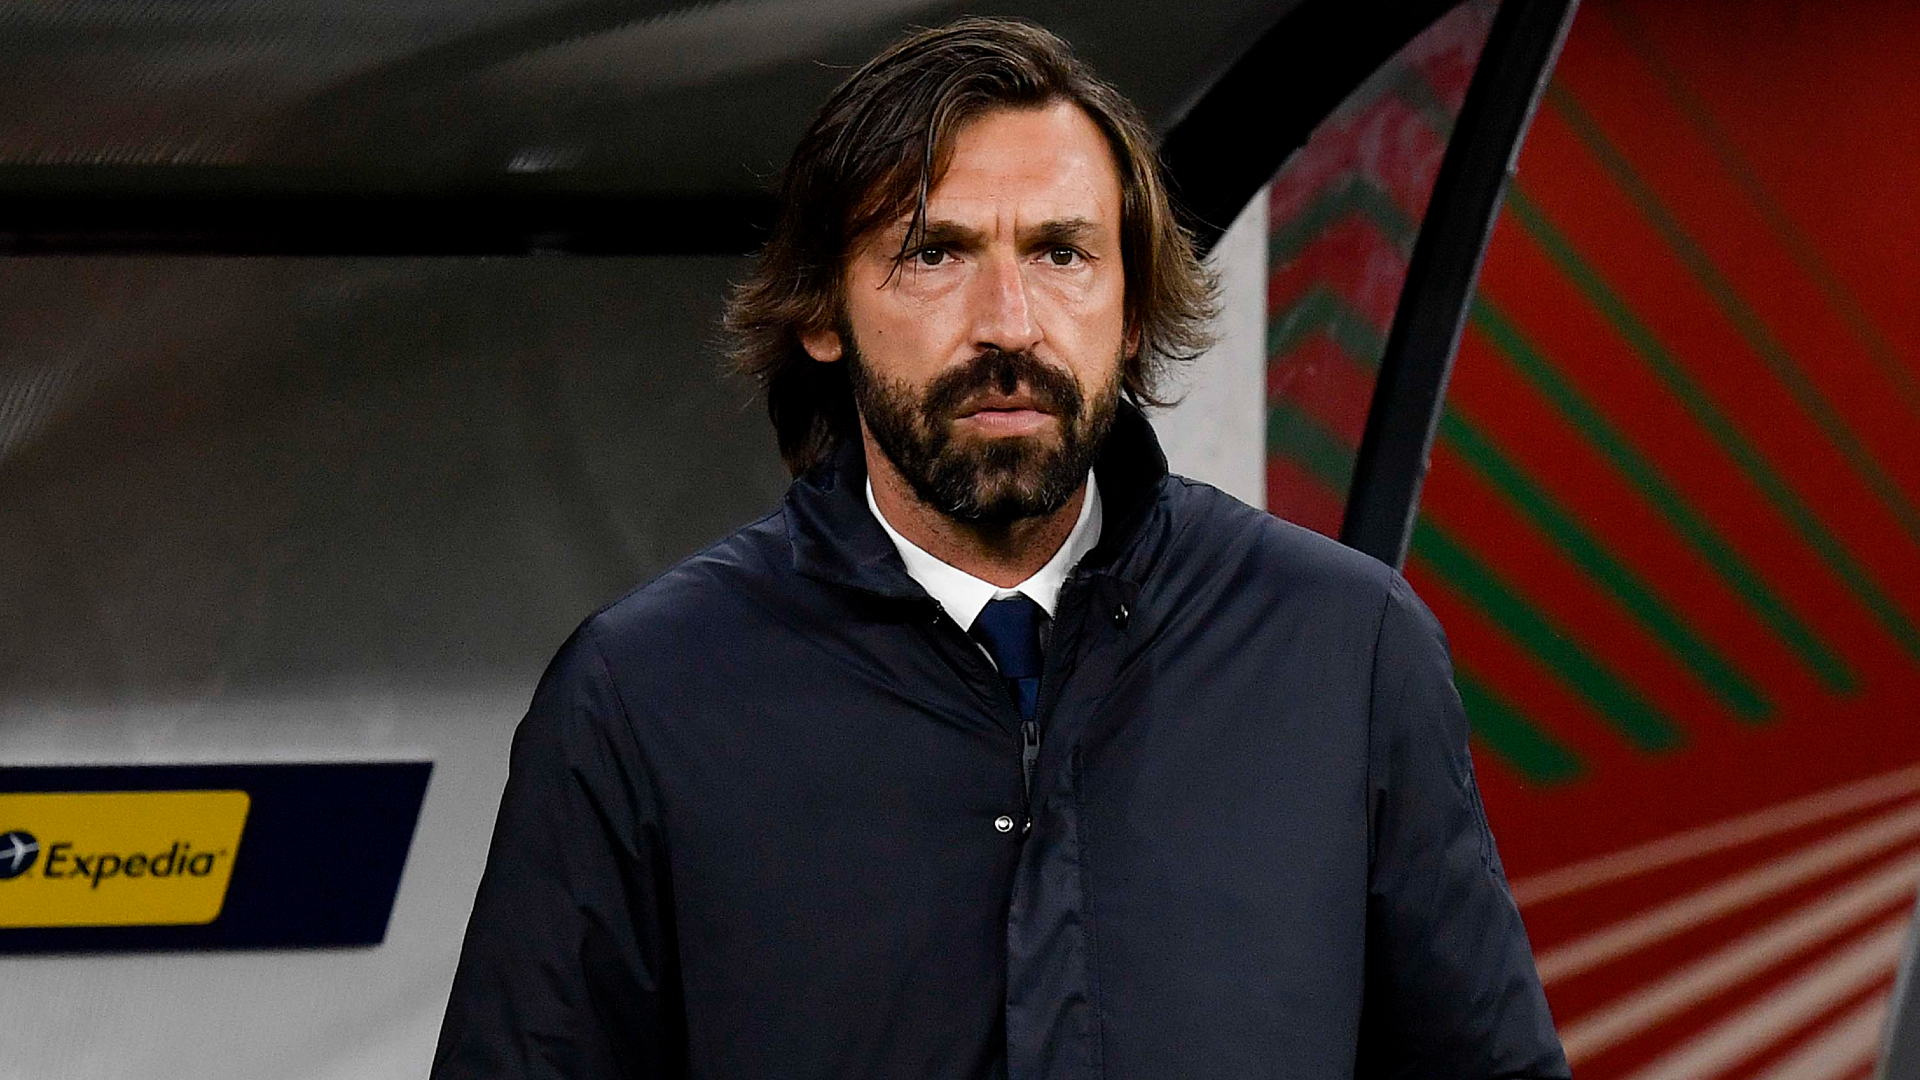 Fiorentina defeat spooked Juve, says Pirlo after champions get back on track against Udinese